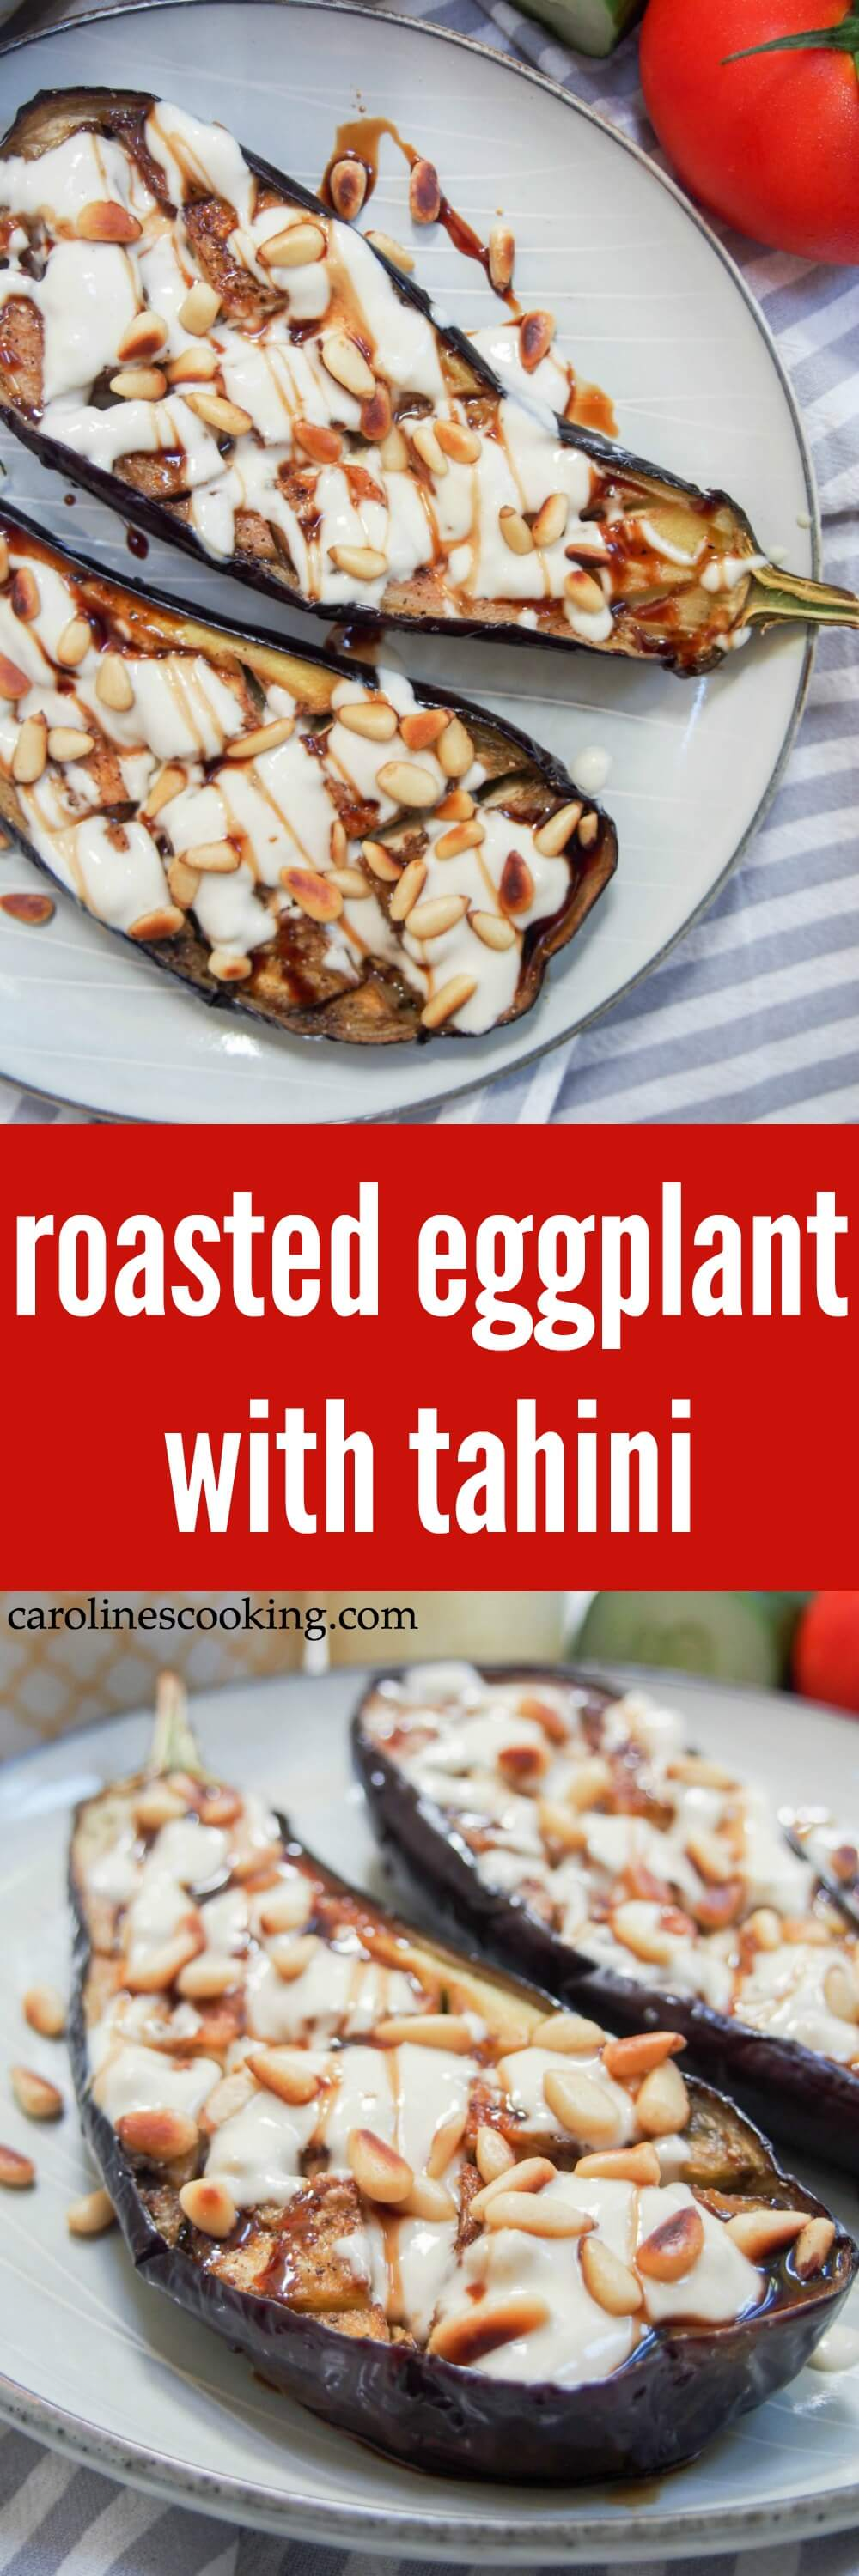 Roasted eggplant with tahini is a delicious appetizer or mezze dish that you'll find in Israel and other parts of the region. It's incredibly easy to make and full of fantastic flavor. Vegan & low carb